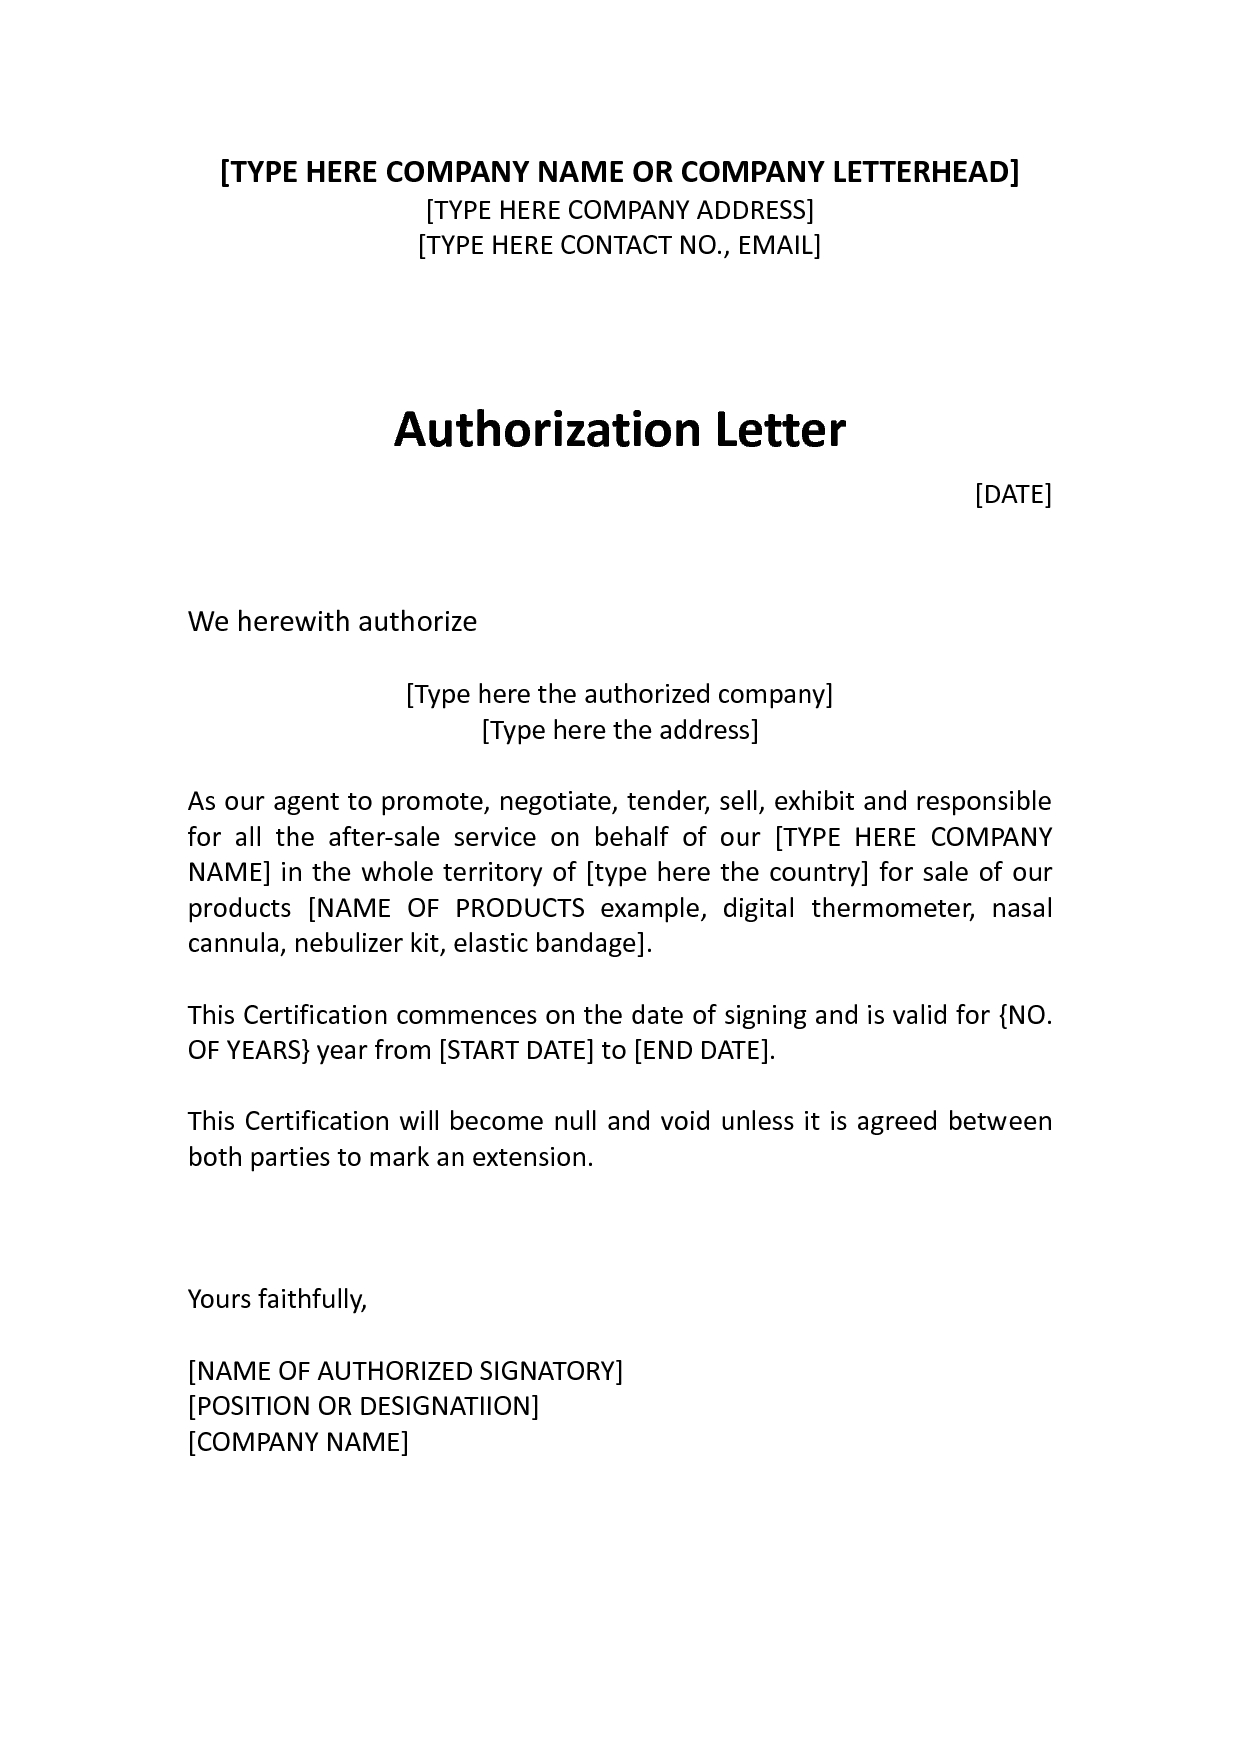 Free Legal Demand Letter Template - Authorization Distributor Letter Sample Distributor Dealer